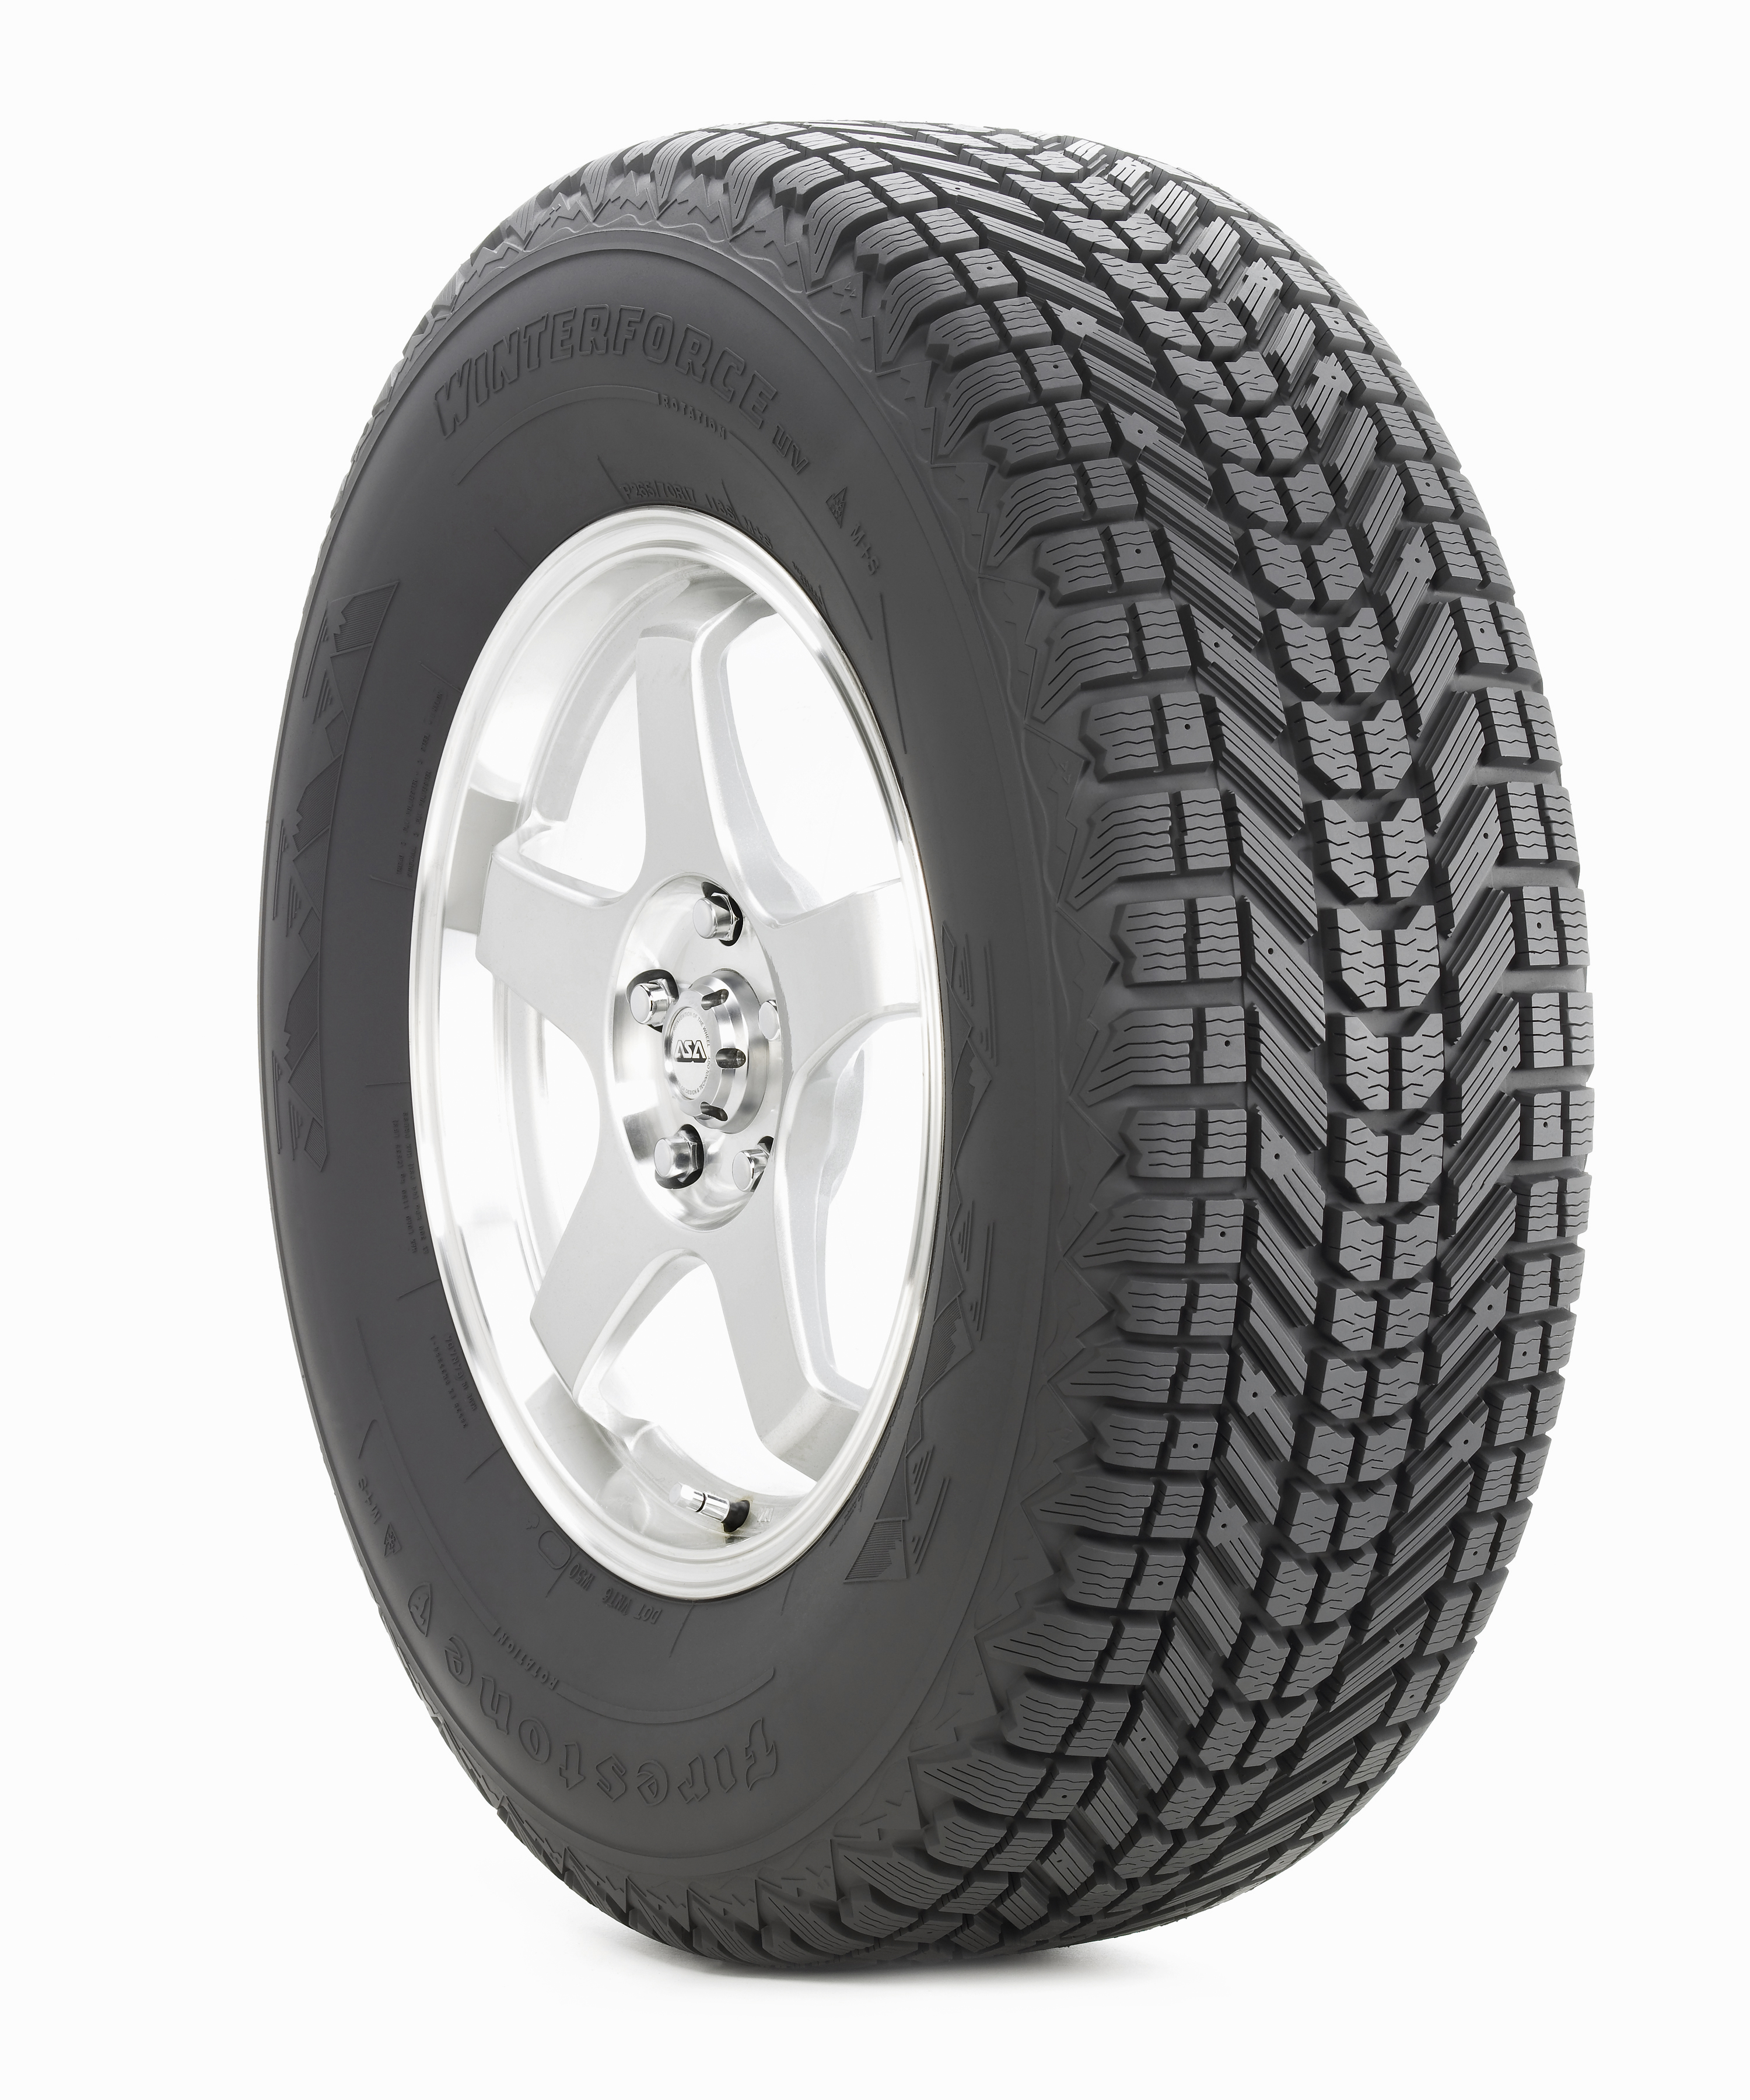 p225 75r15 firestone winterforce uv snow tire 102s. Black Bedroom Furniture Sets. Home Design Ideas